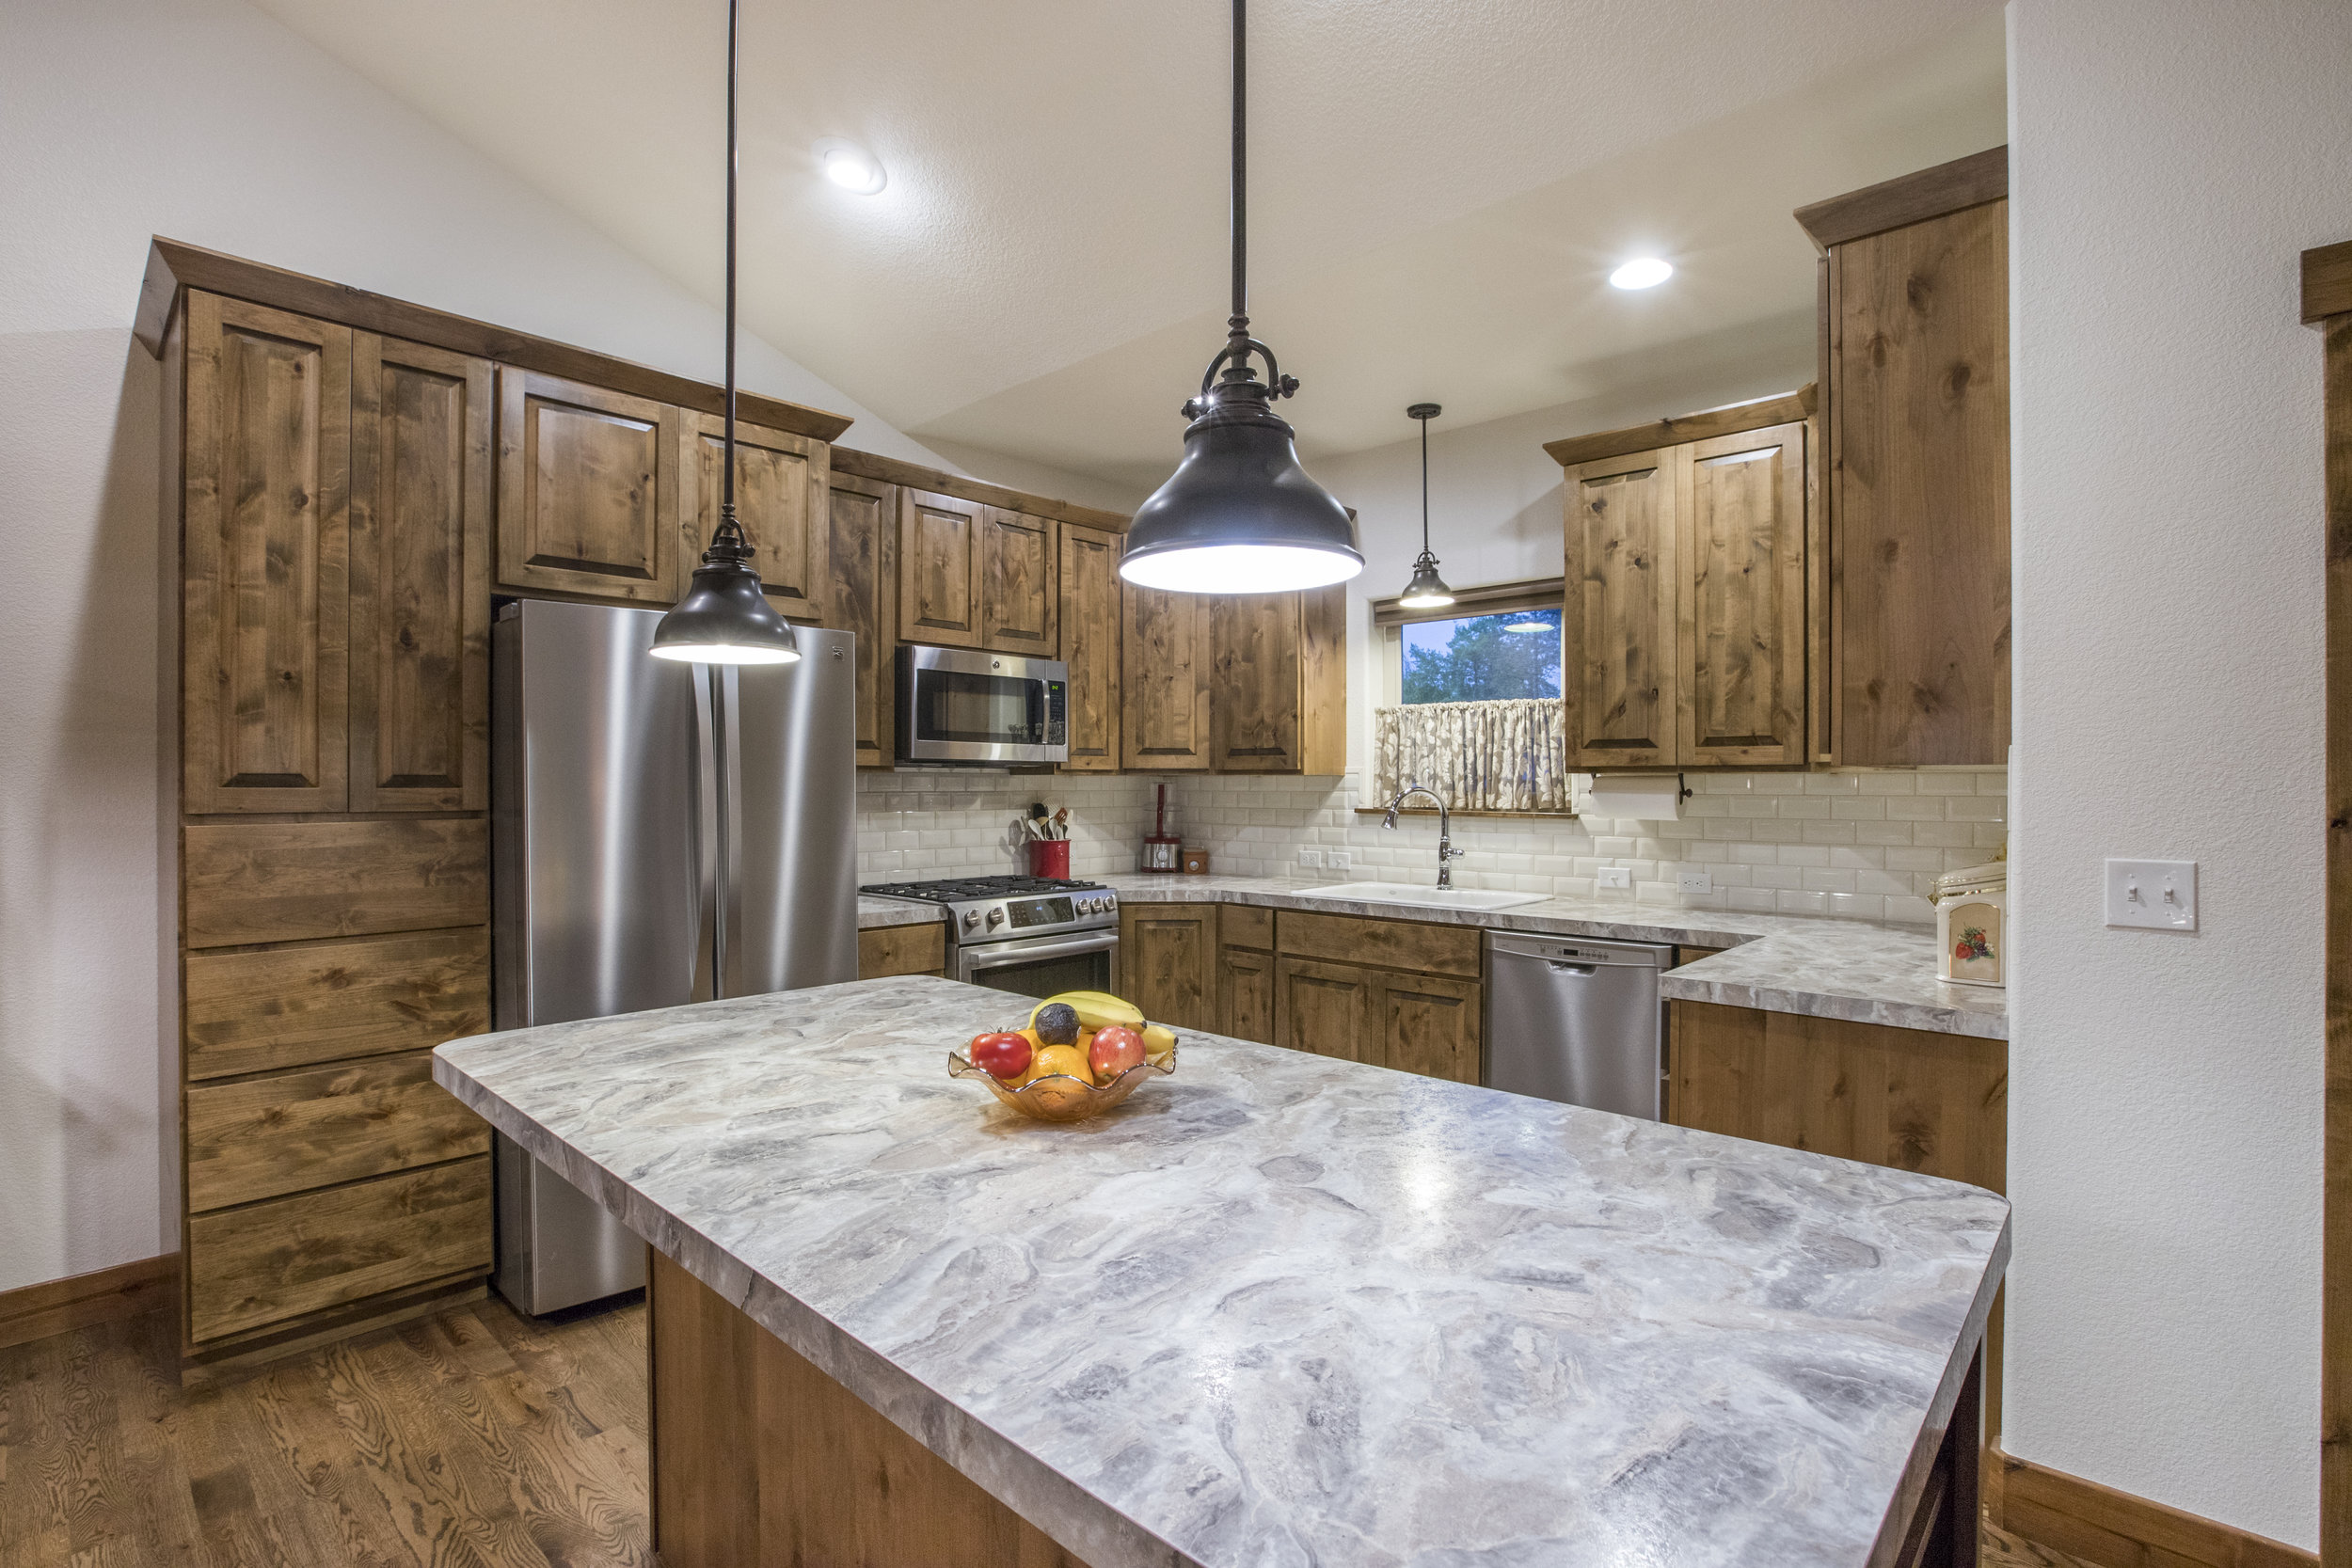 Upgraded Lighting & SS Appliances